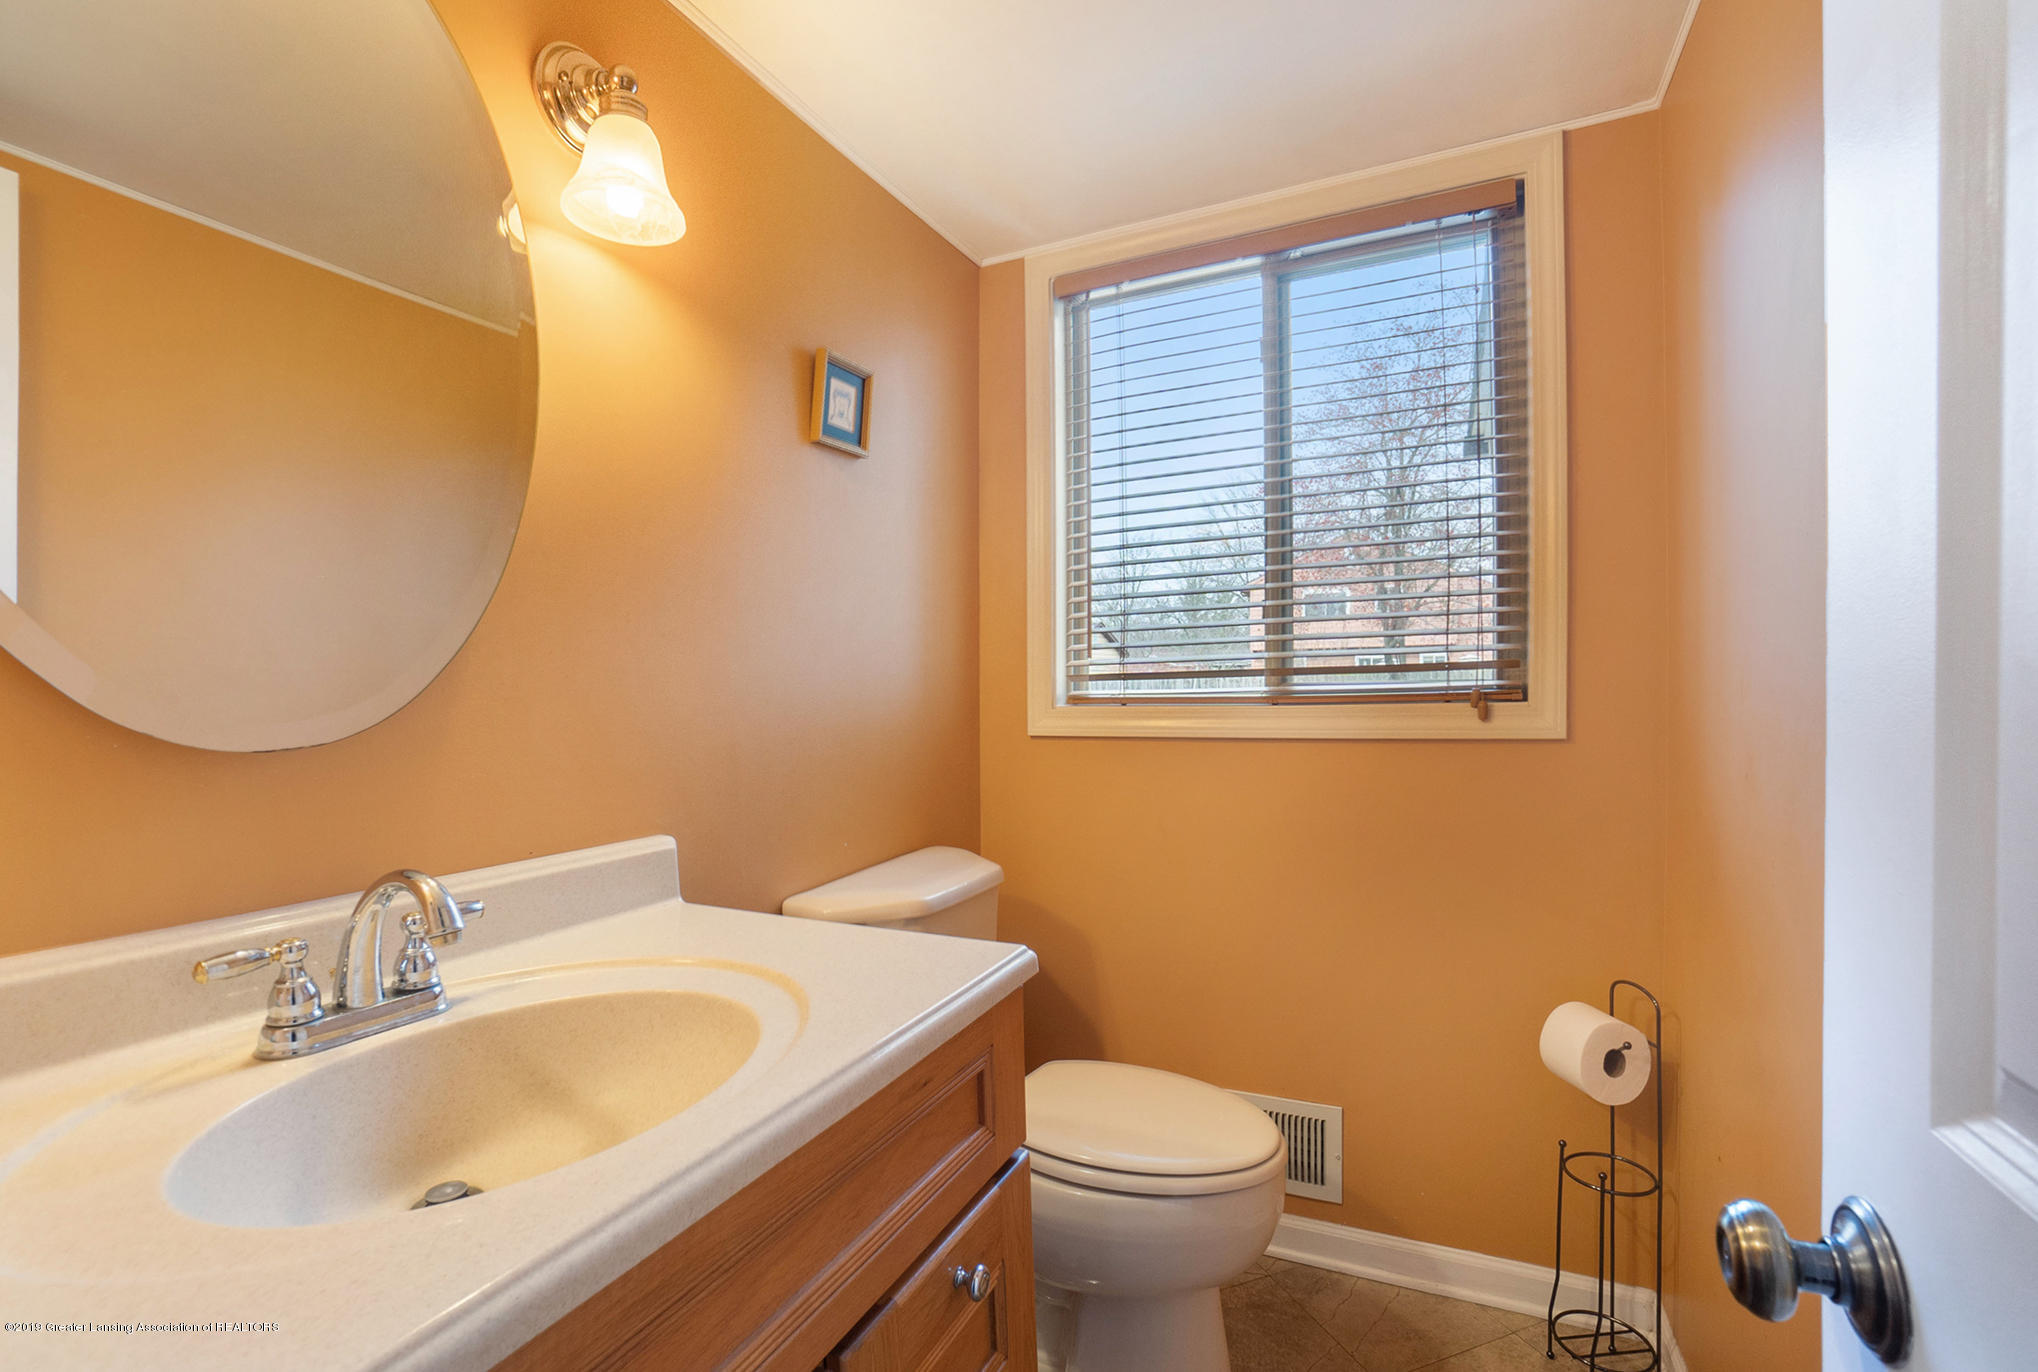 4666 Crampton Way - Bathroom - 11